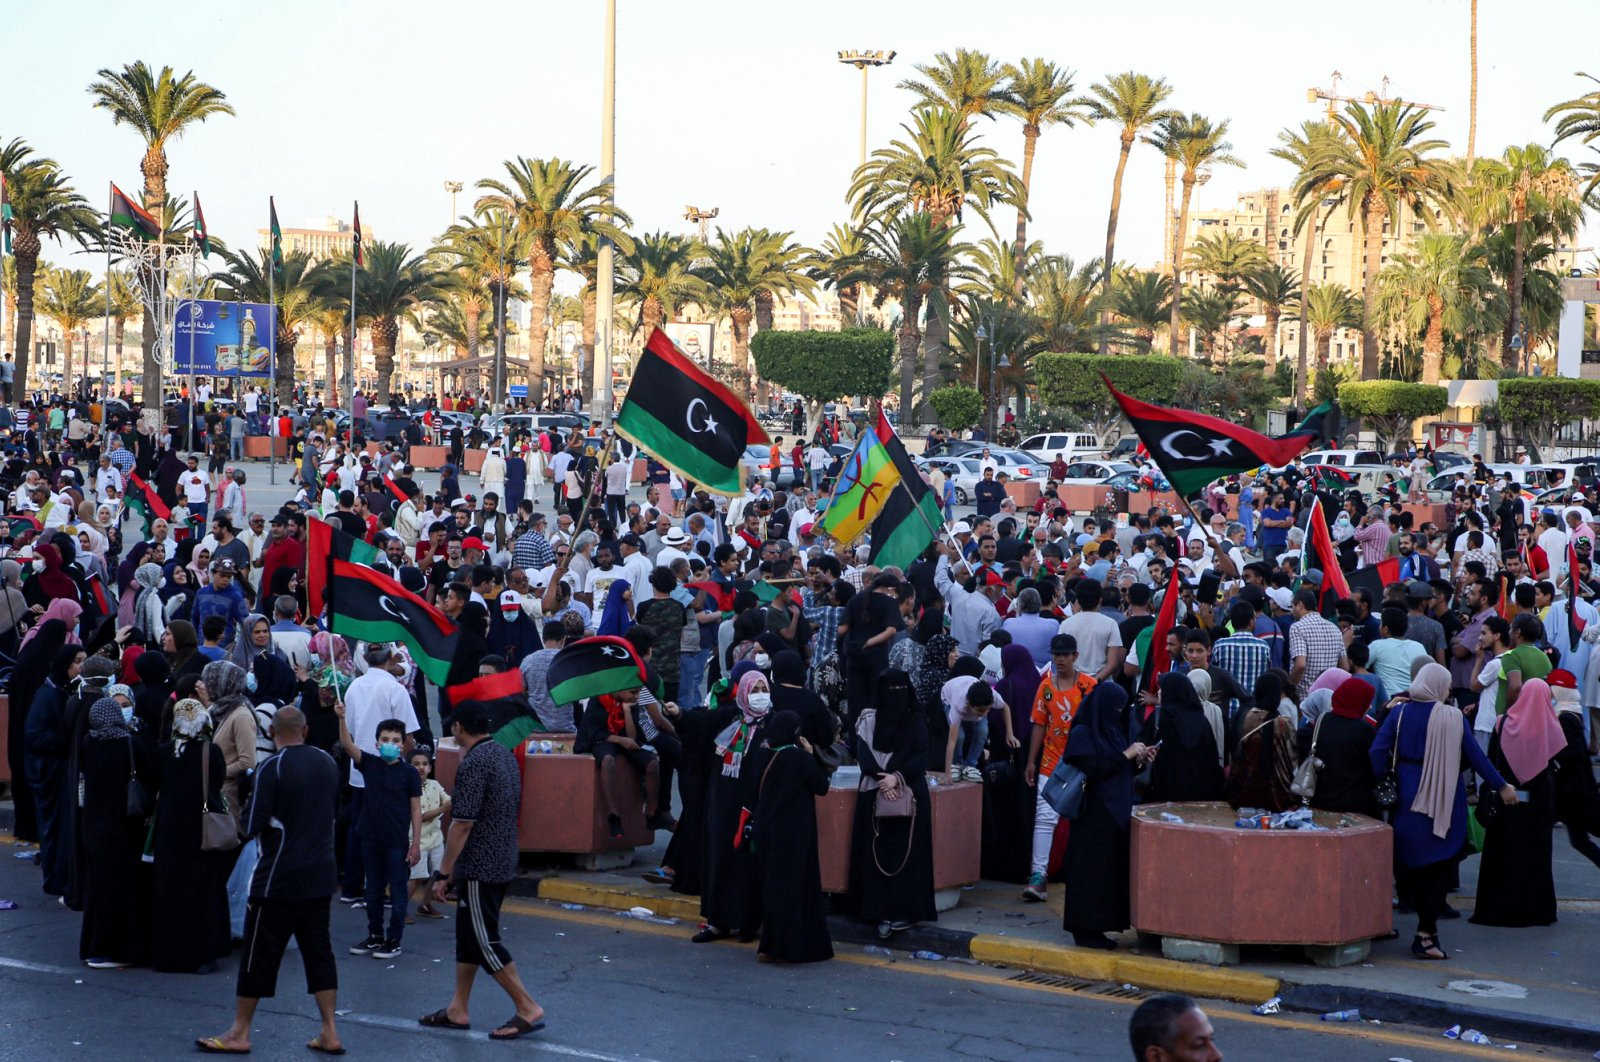 People celebrate with Libyan national flags in the capital Tripoli's Martyrs' Square, after the U.N.-recognized Government of National Accord (GNA) captured the town of Tarhuna from forces loyal to putschist Gen. Khalifa Haftar, June 5, 2020. (AFP Photo)